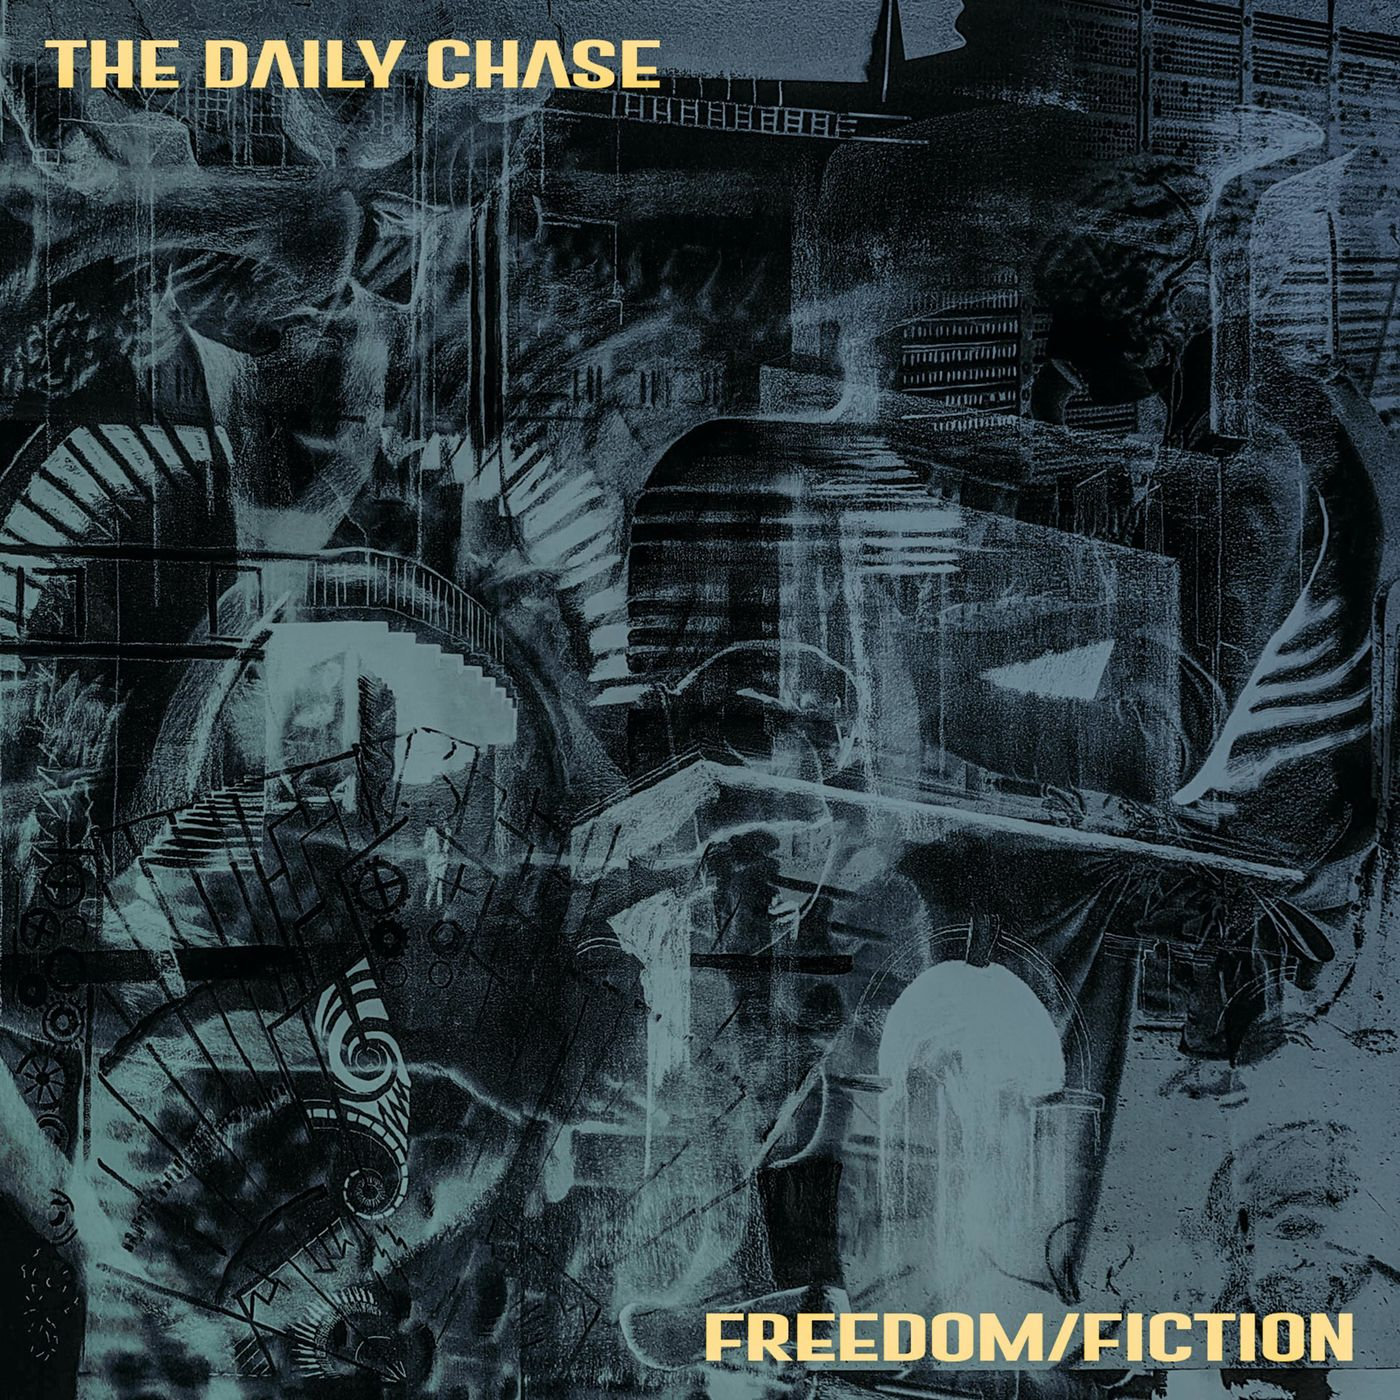 The Daily Chase - Freedom/Fiction [single] (2019)